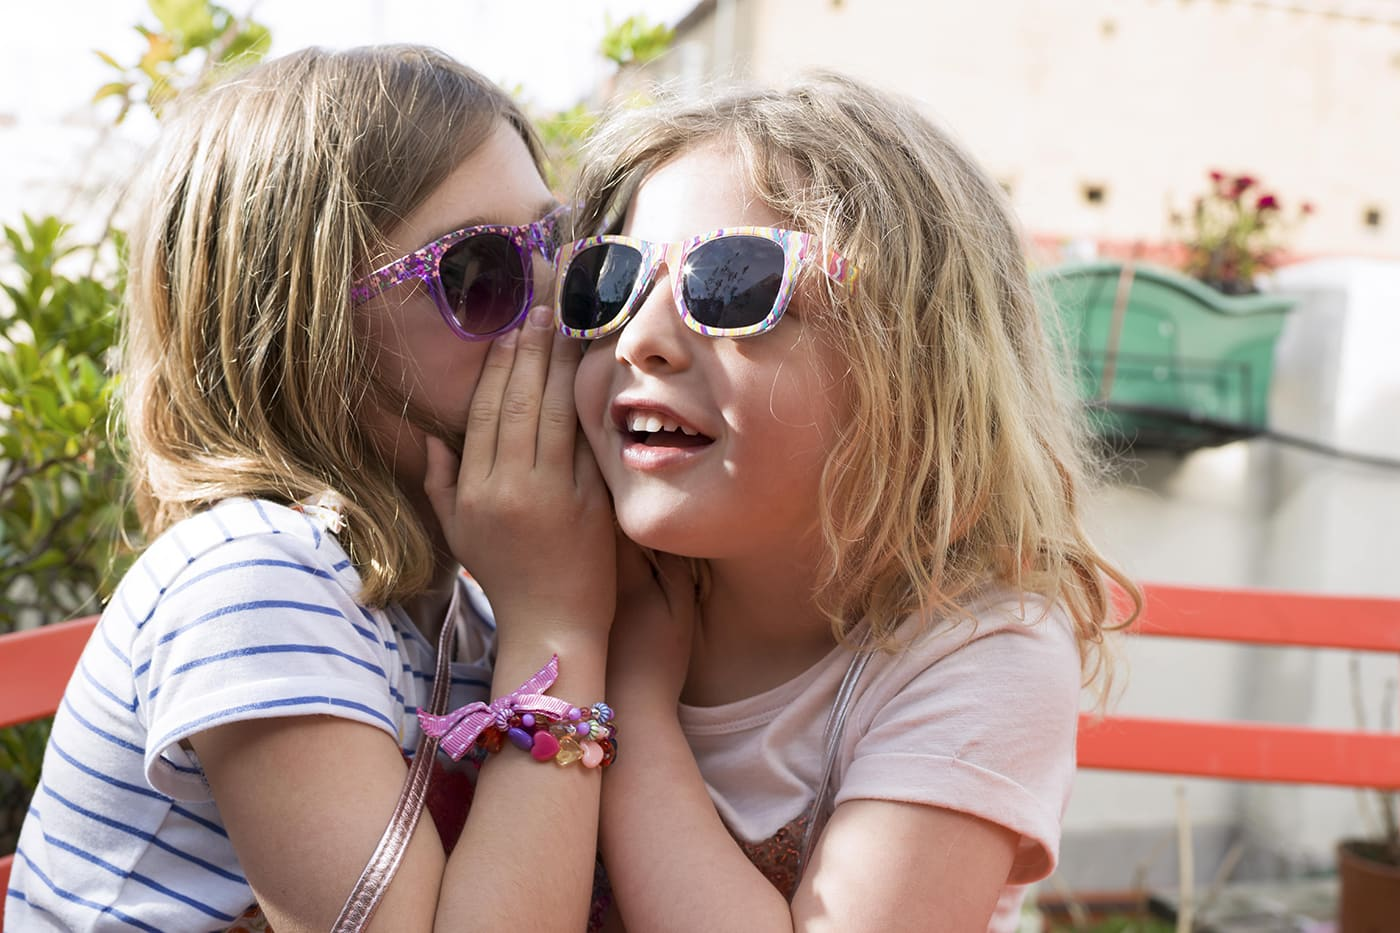 2 young girls wearing sunglasses in an outside garden telling secrets to each other.